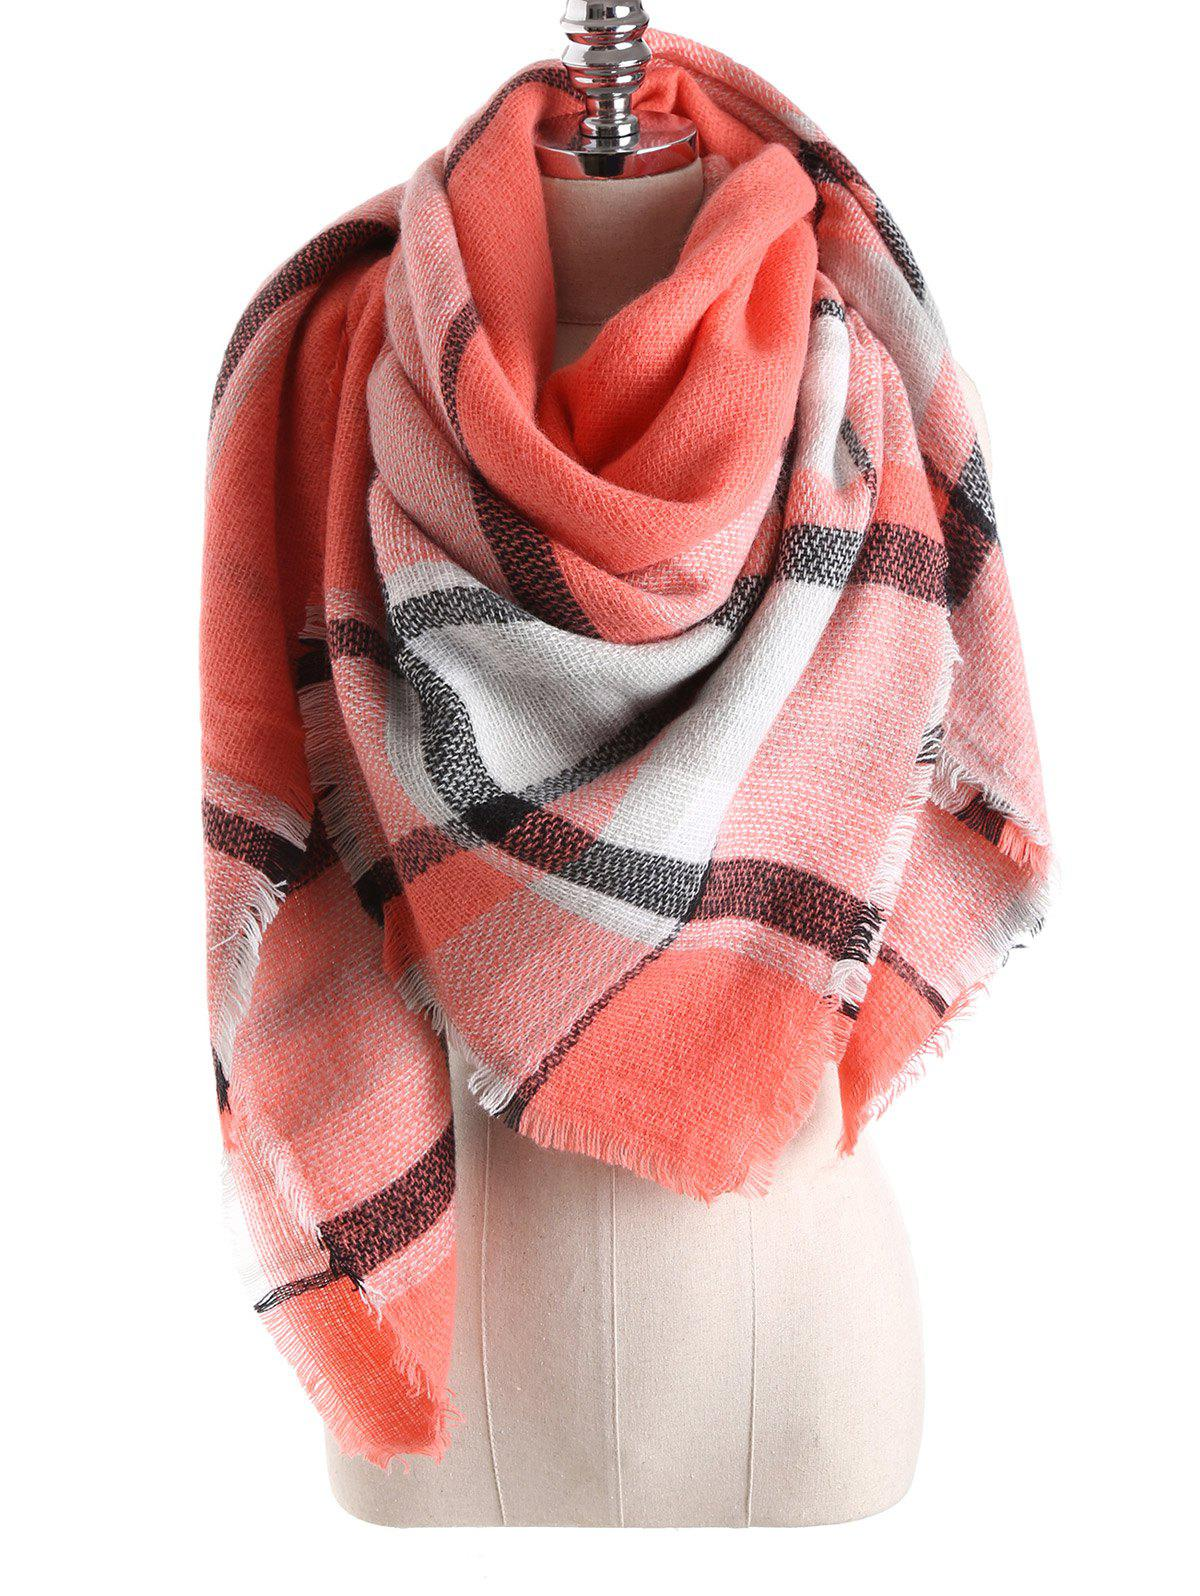 Warm Tartan Plaid Blanket Shawl Scarf - ORANGEPINK